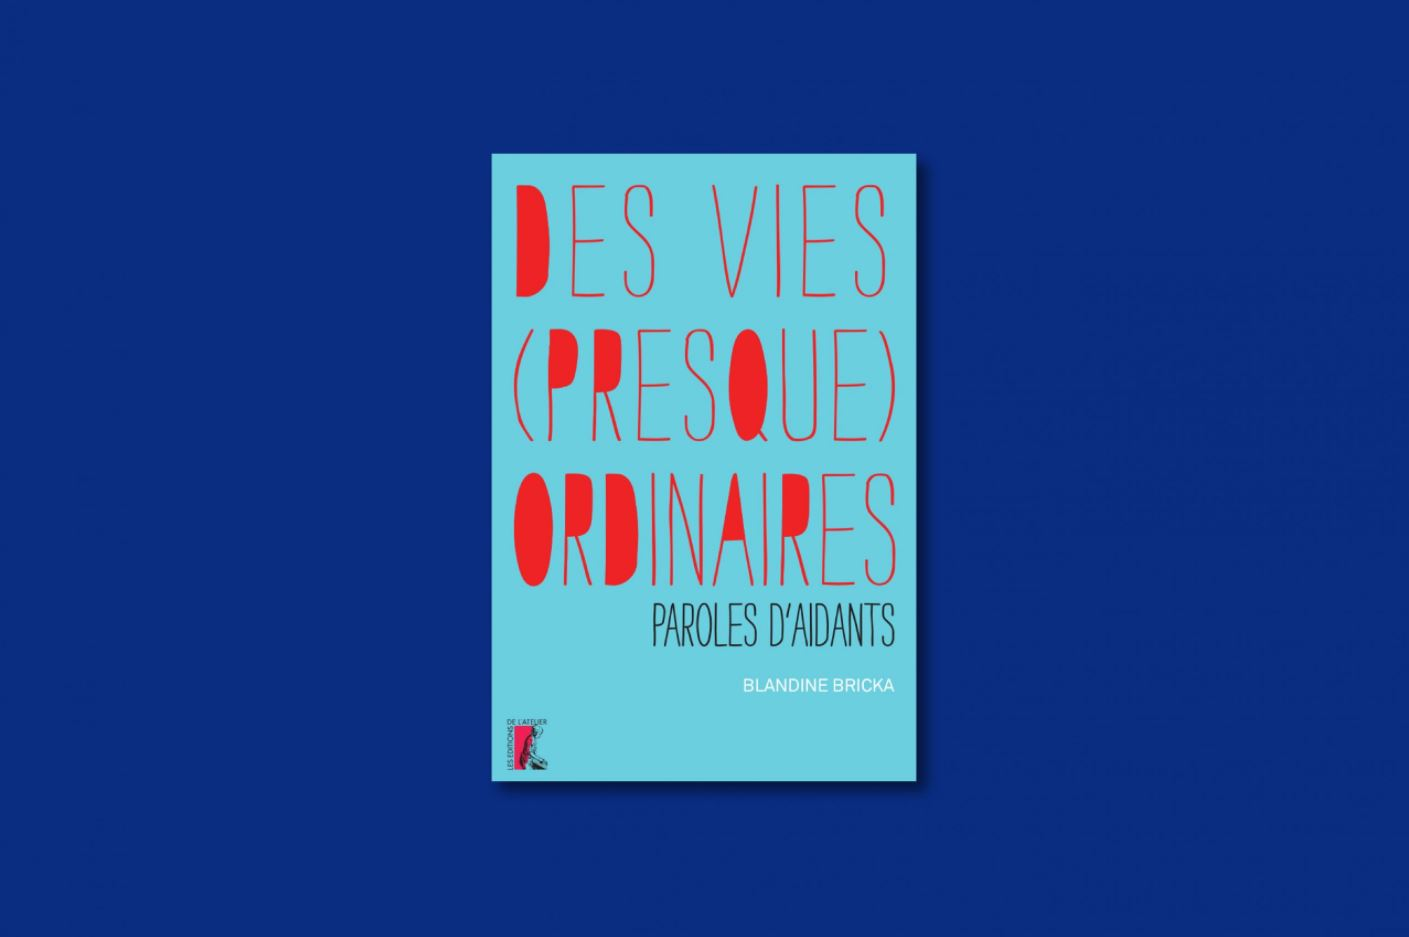 Des vies (presque) ordinaires – Paroles d'aidants